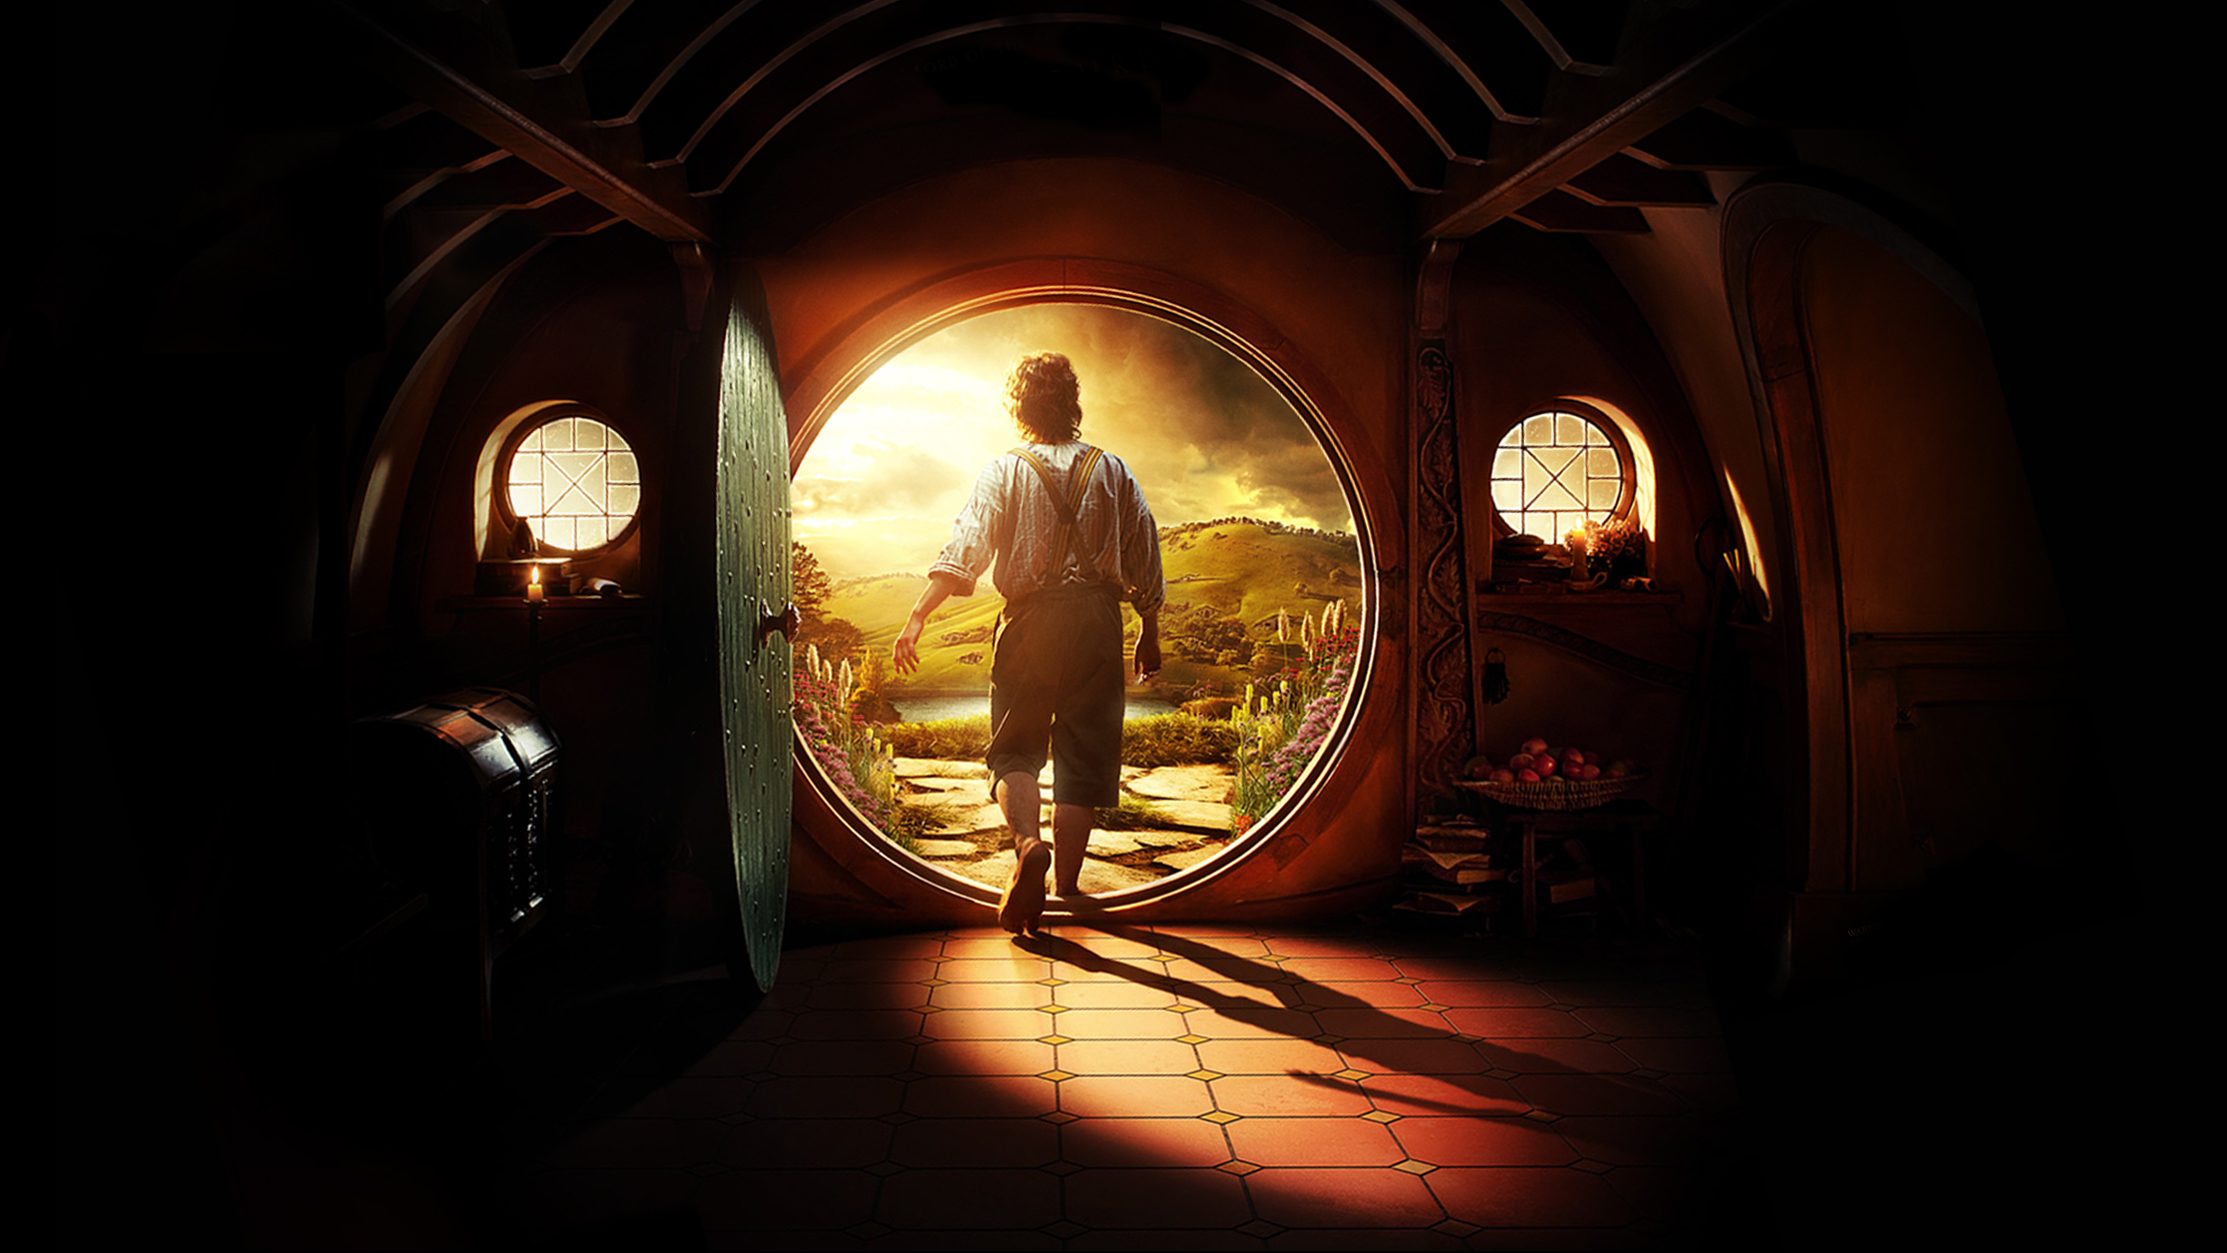 The Hobbit   Bilbo Baggins fond dcran   Le Hobbit photo 33042280 2227x1253